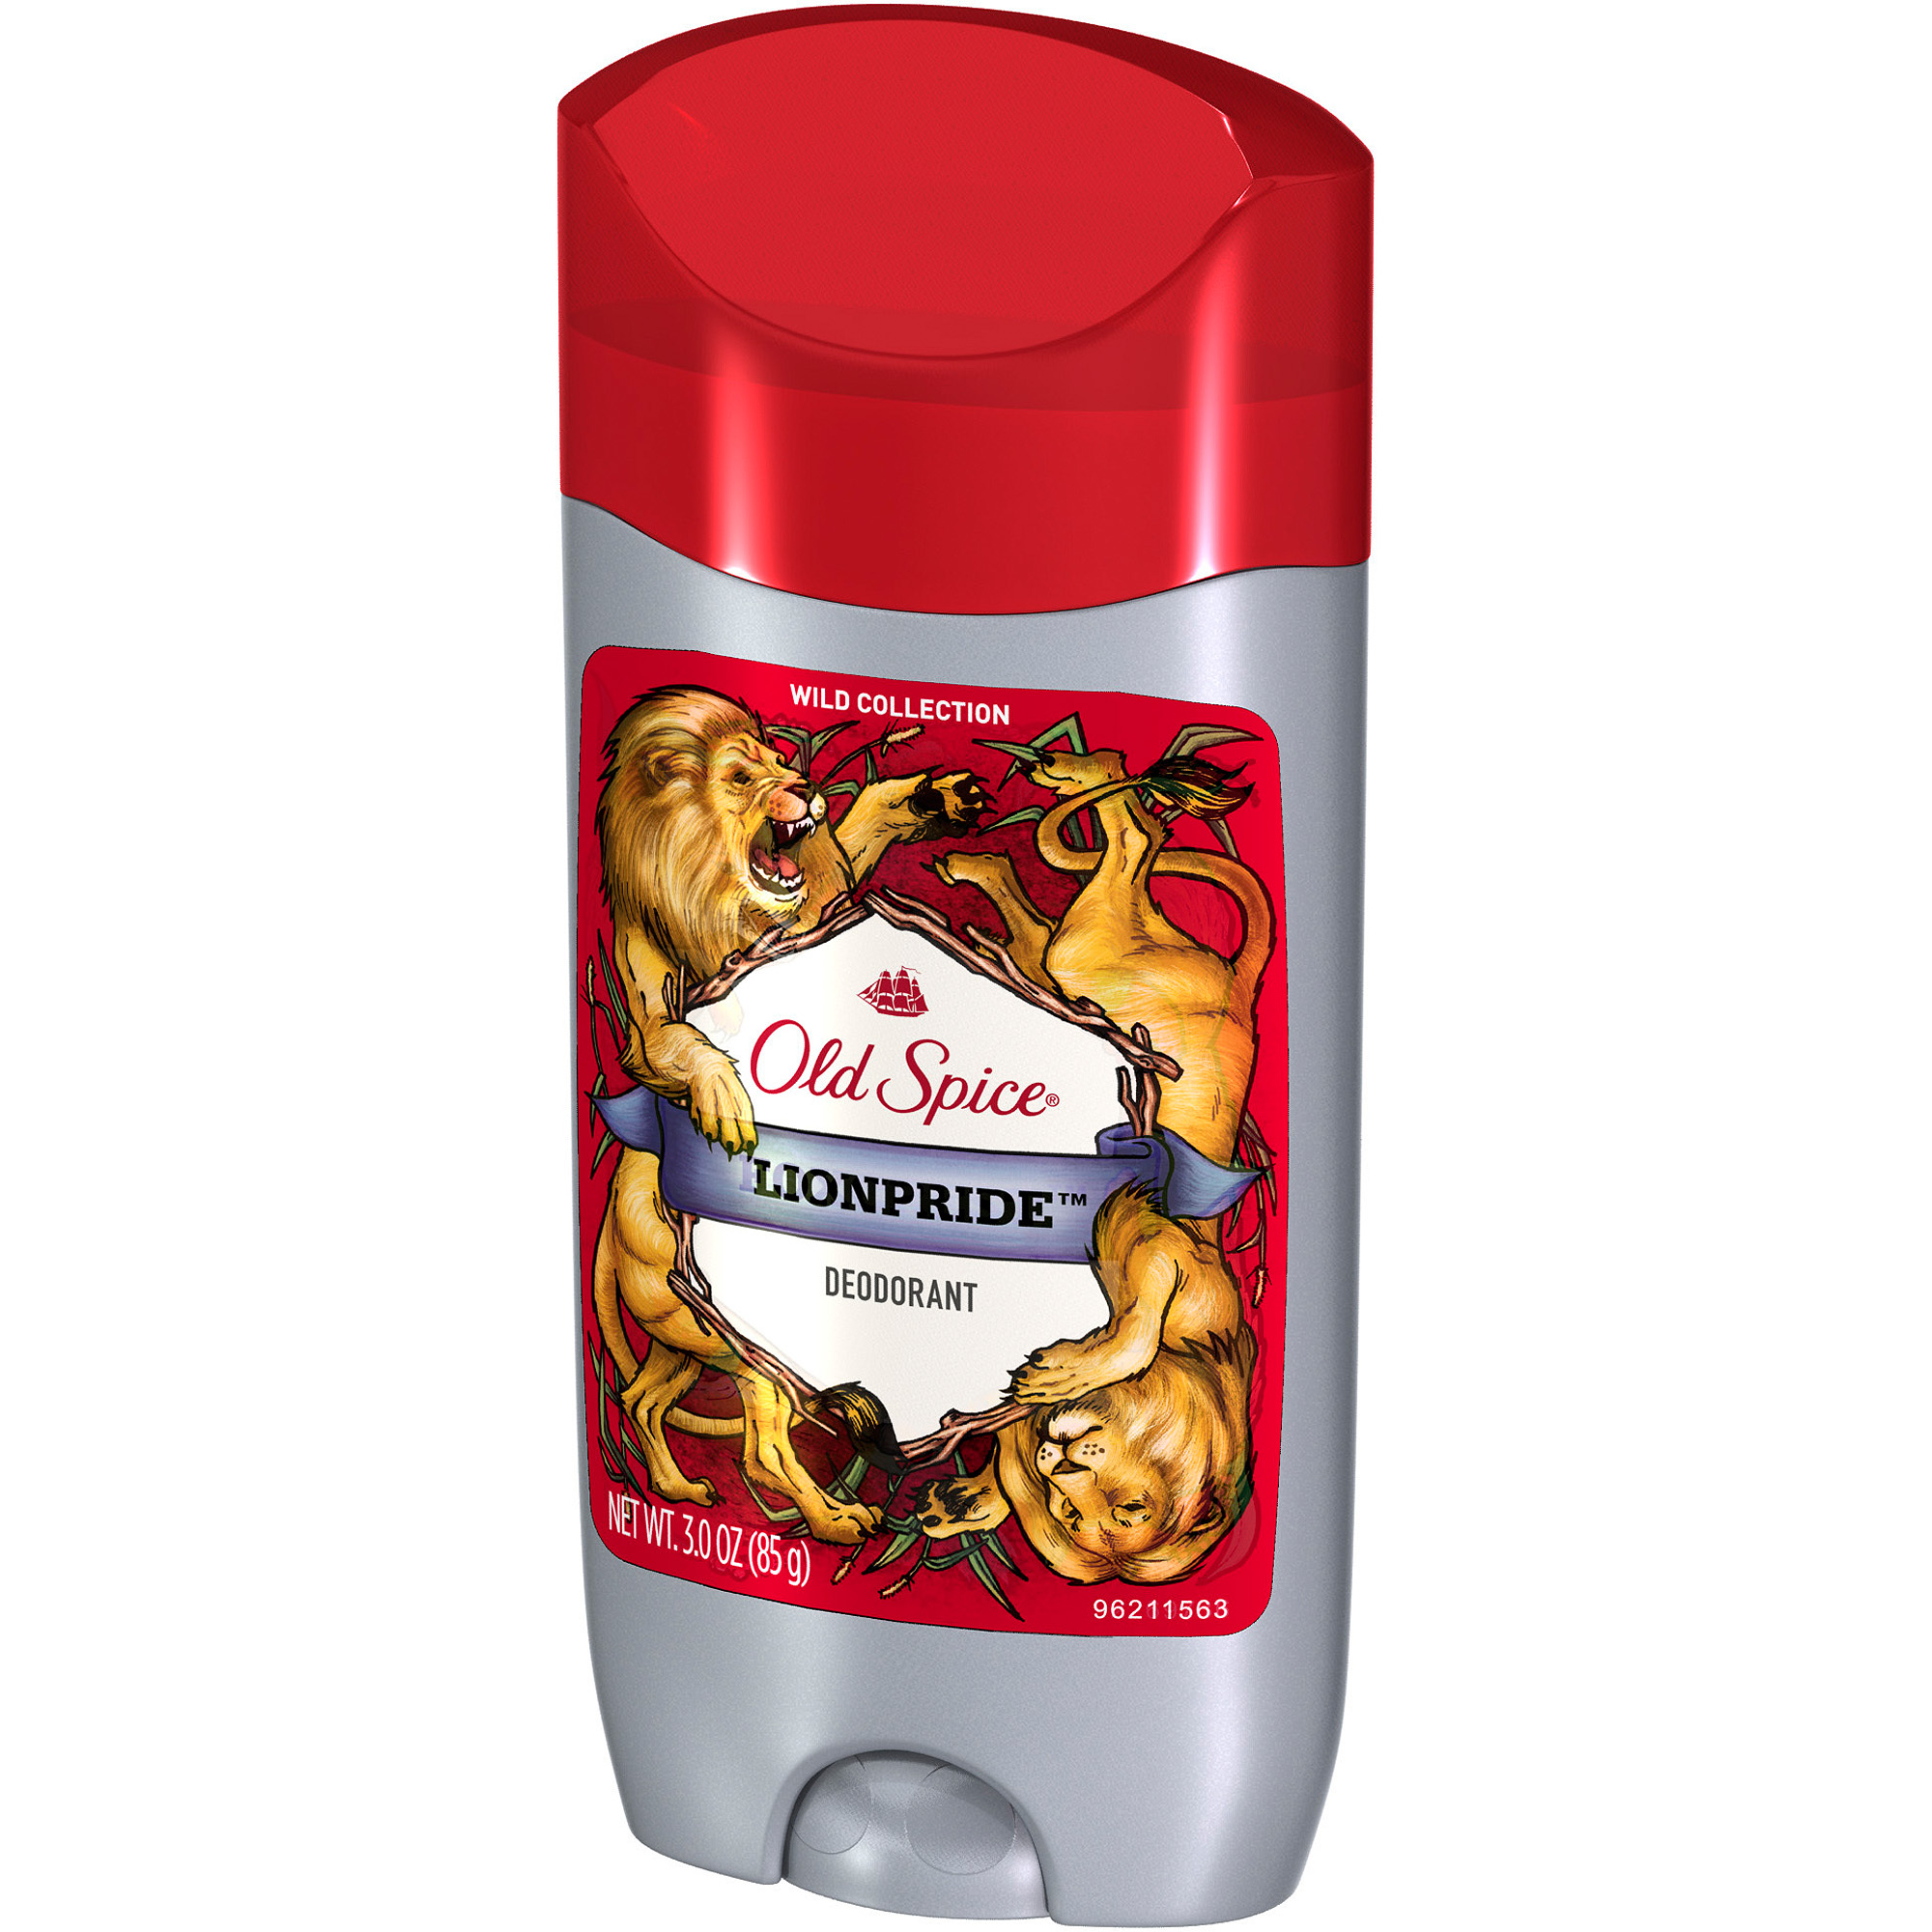 Old Spice Wild Collection Lionpride Solid Deodorant, 3 oz